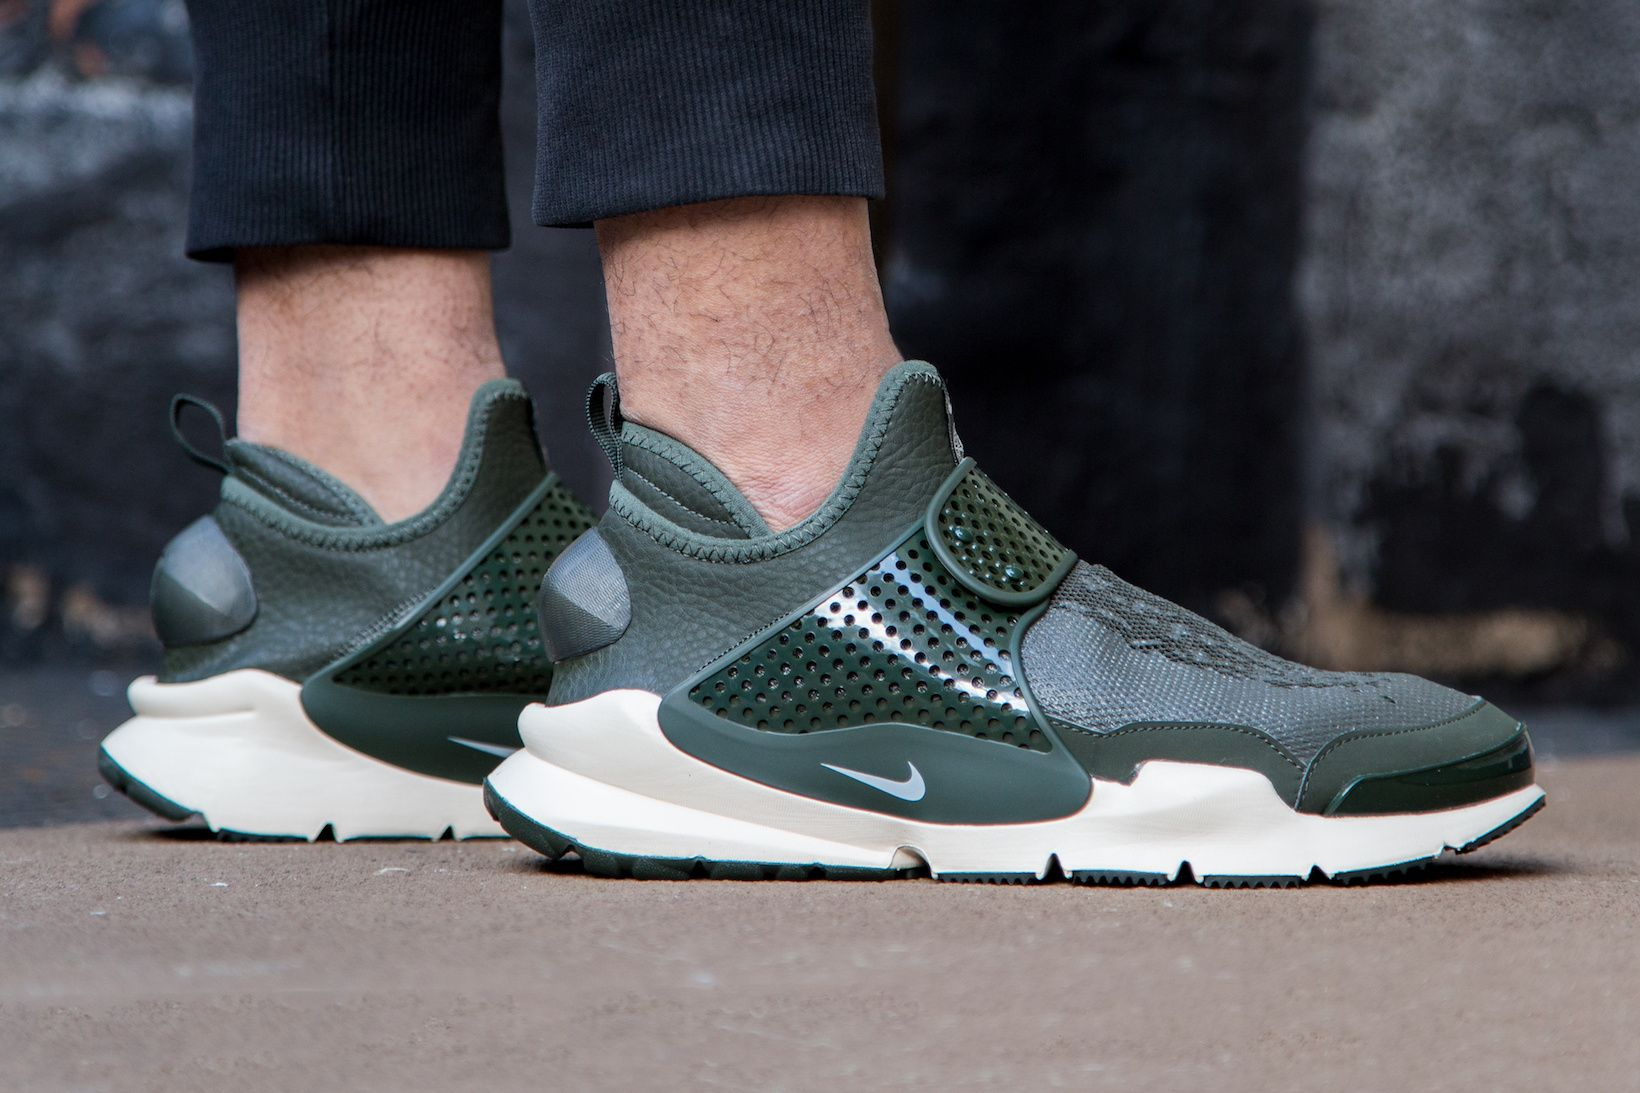 An #OnFeet Look at the Stone Island x NikeLab Sock Dart Mid